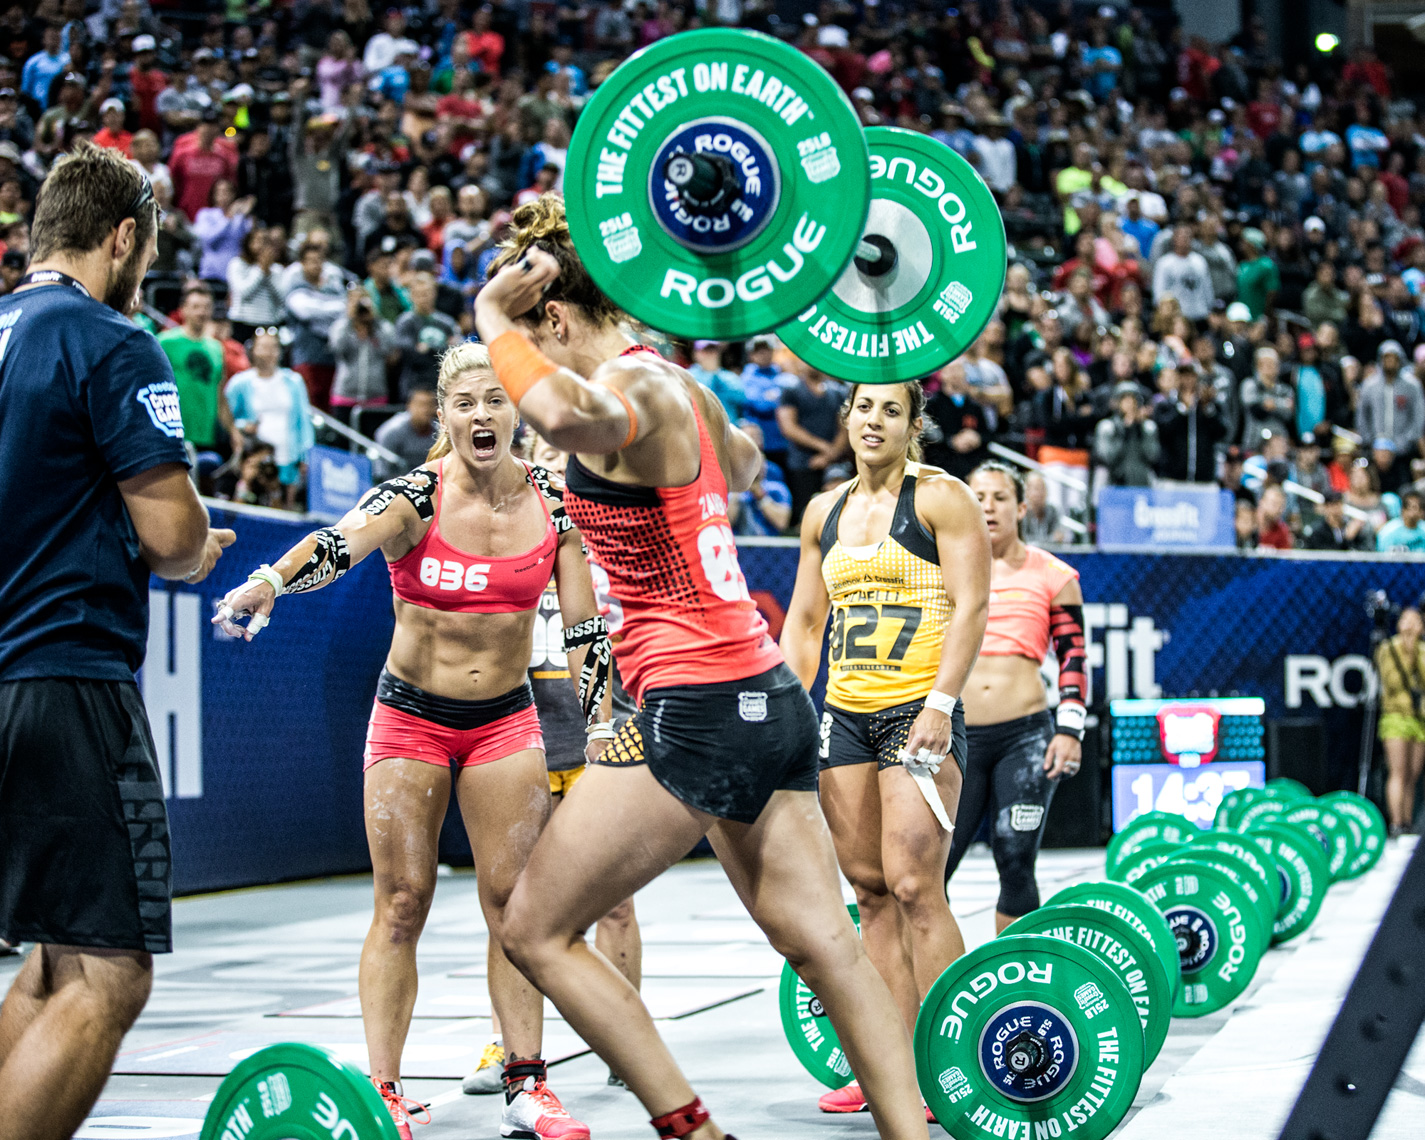 Los Angeles Sports Photography, Michael Brian, athlete, female, Lindsey Valenzuela, Reebok Crossfit Games, Rory Zambard, Alessandra Pichelli and Kara Webb during competition, StubHub Center